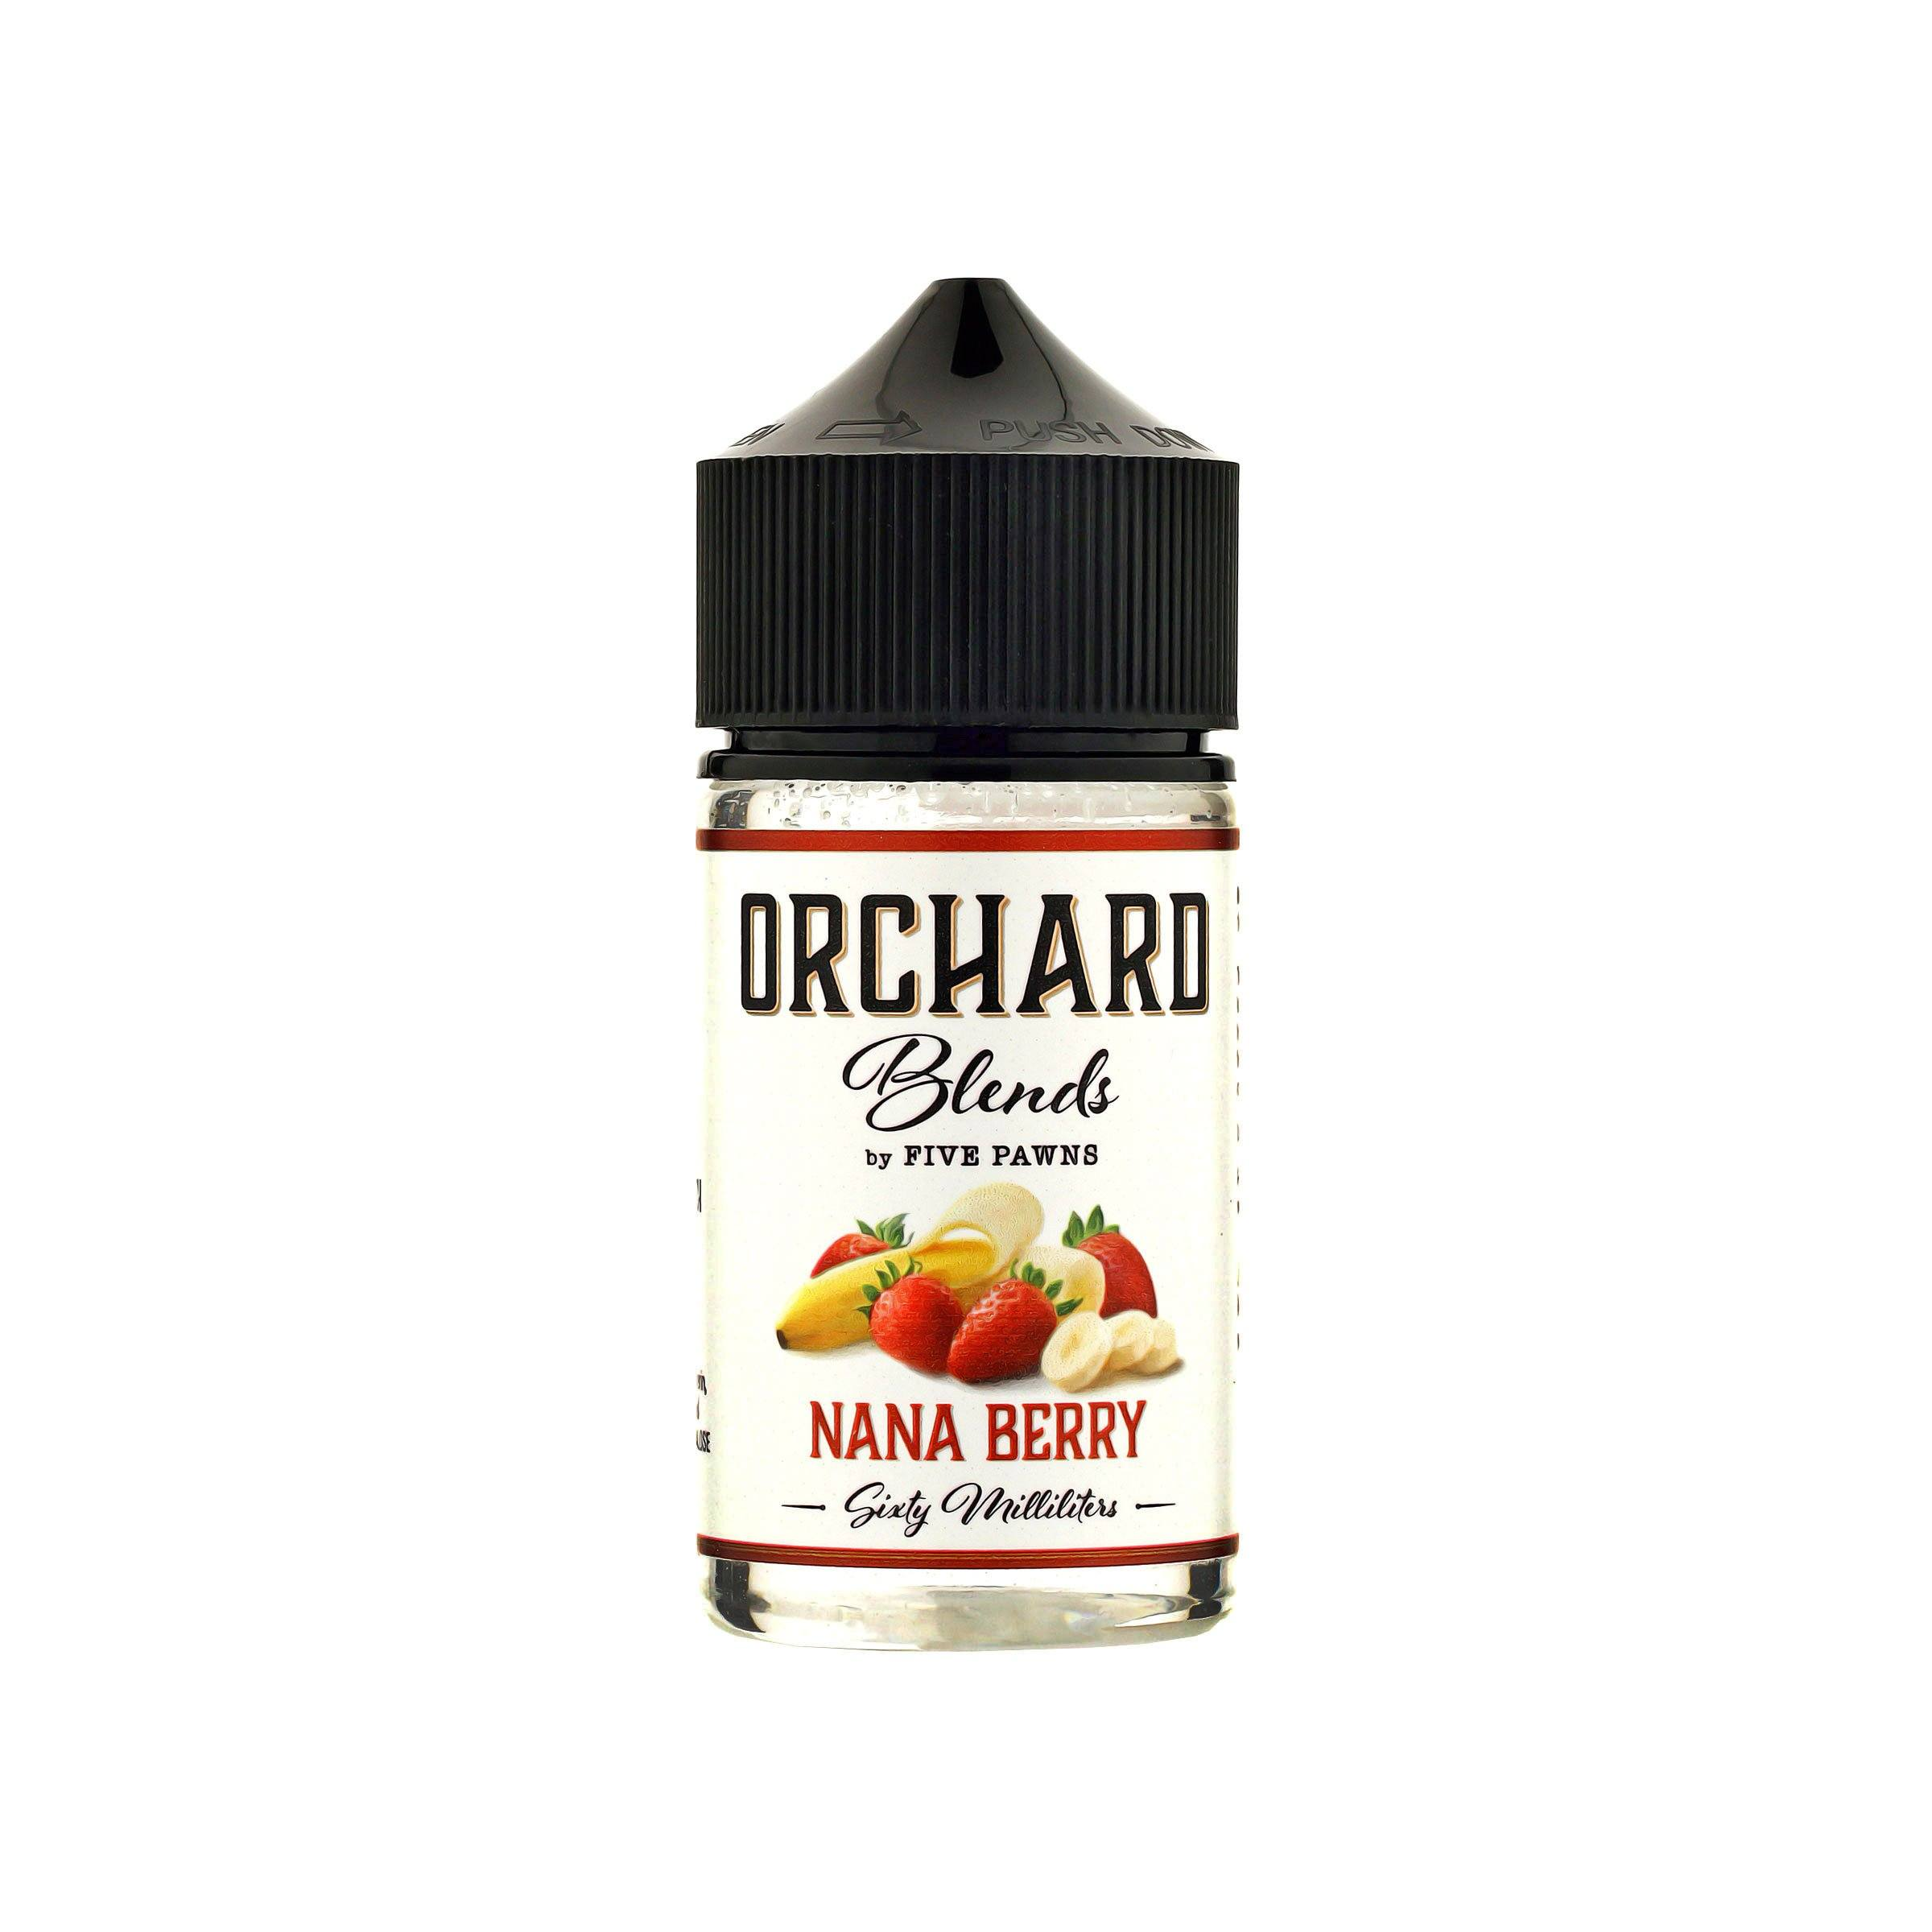 Orchard Blends Nana Berry E-Juice by Five Pawns